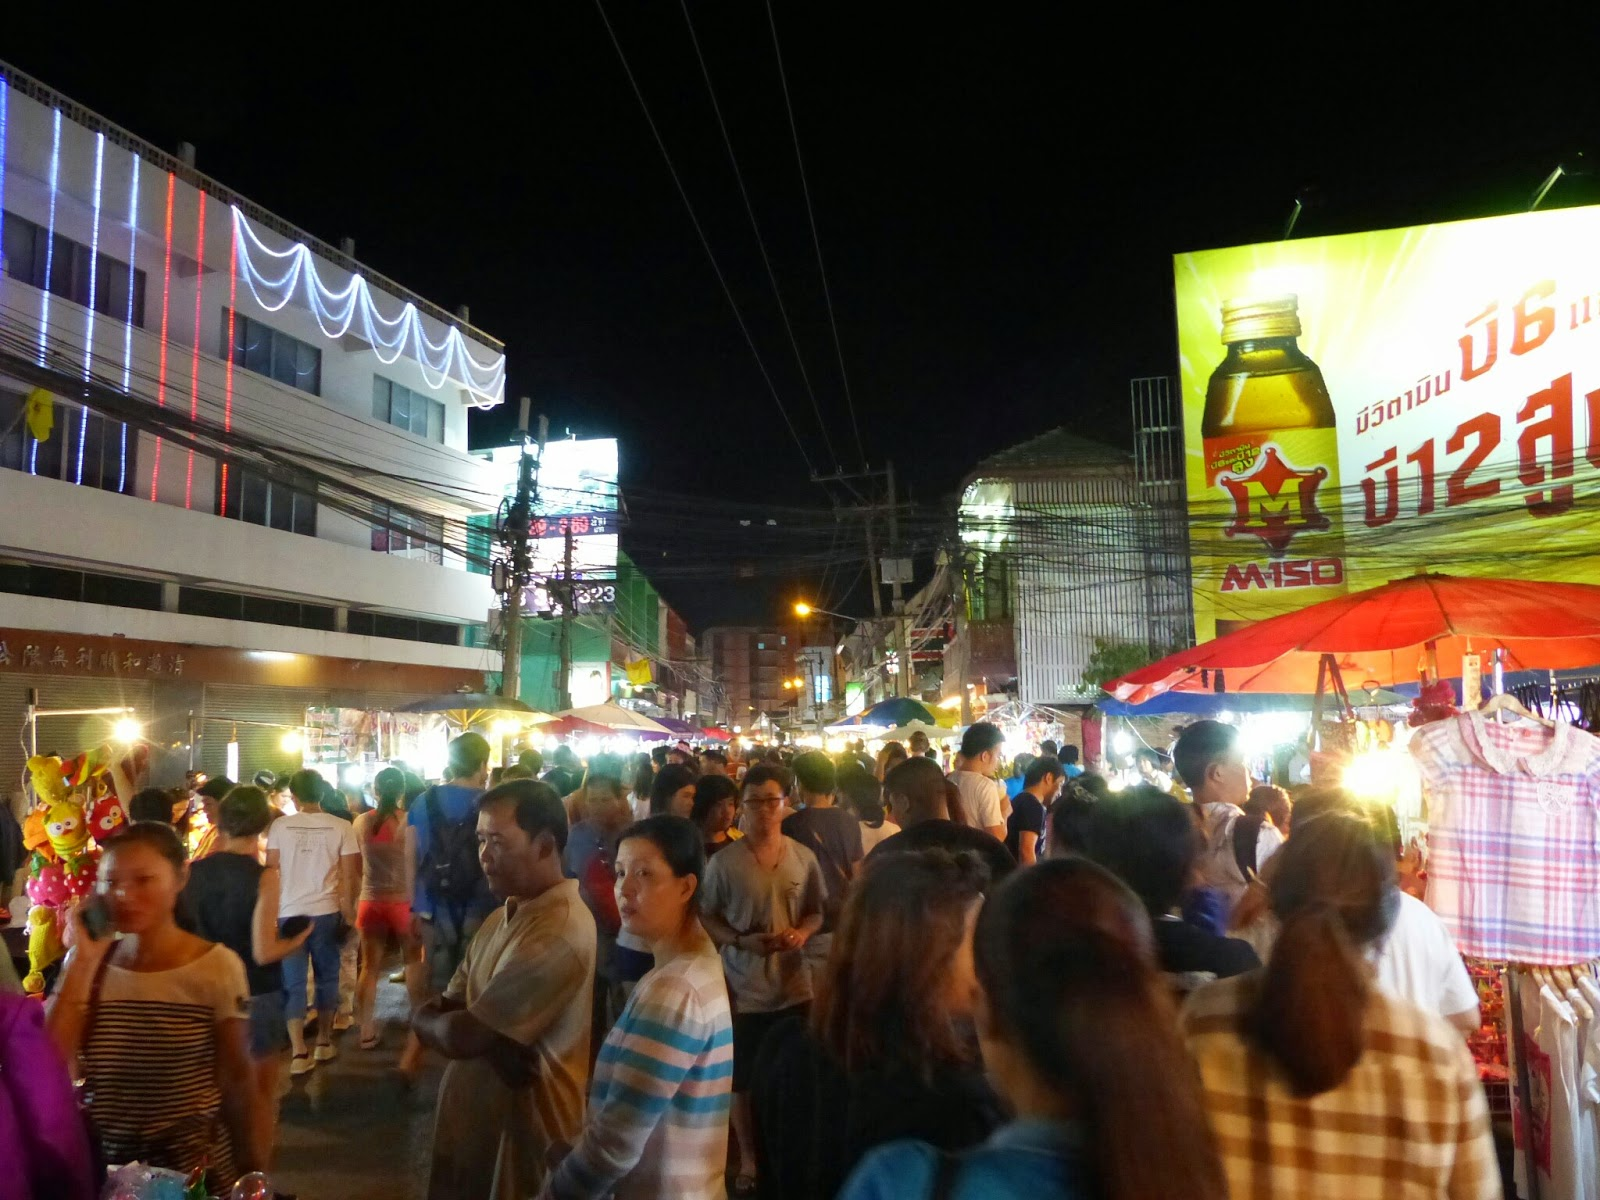 Chiang-Mai's Wualai Road Saturday Night Market